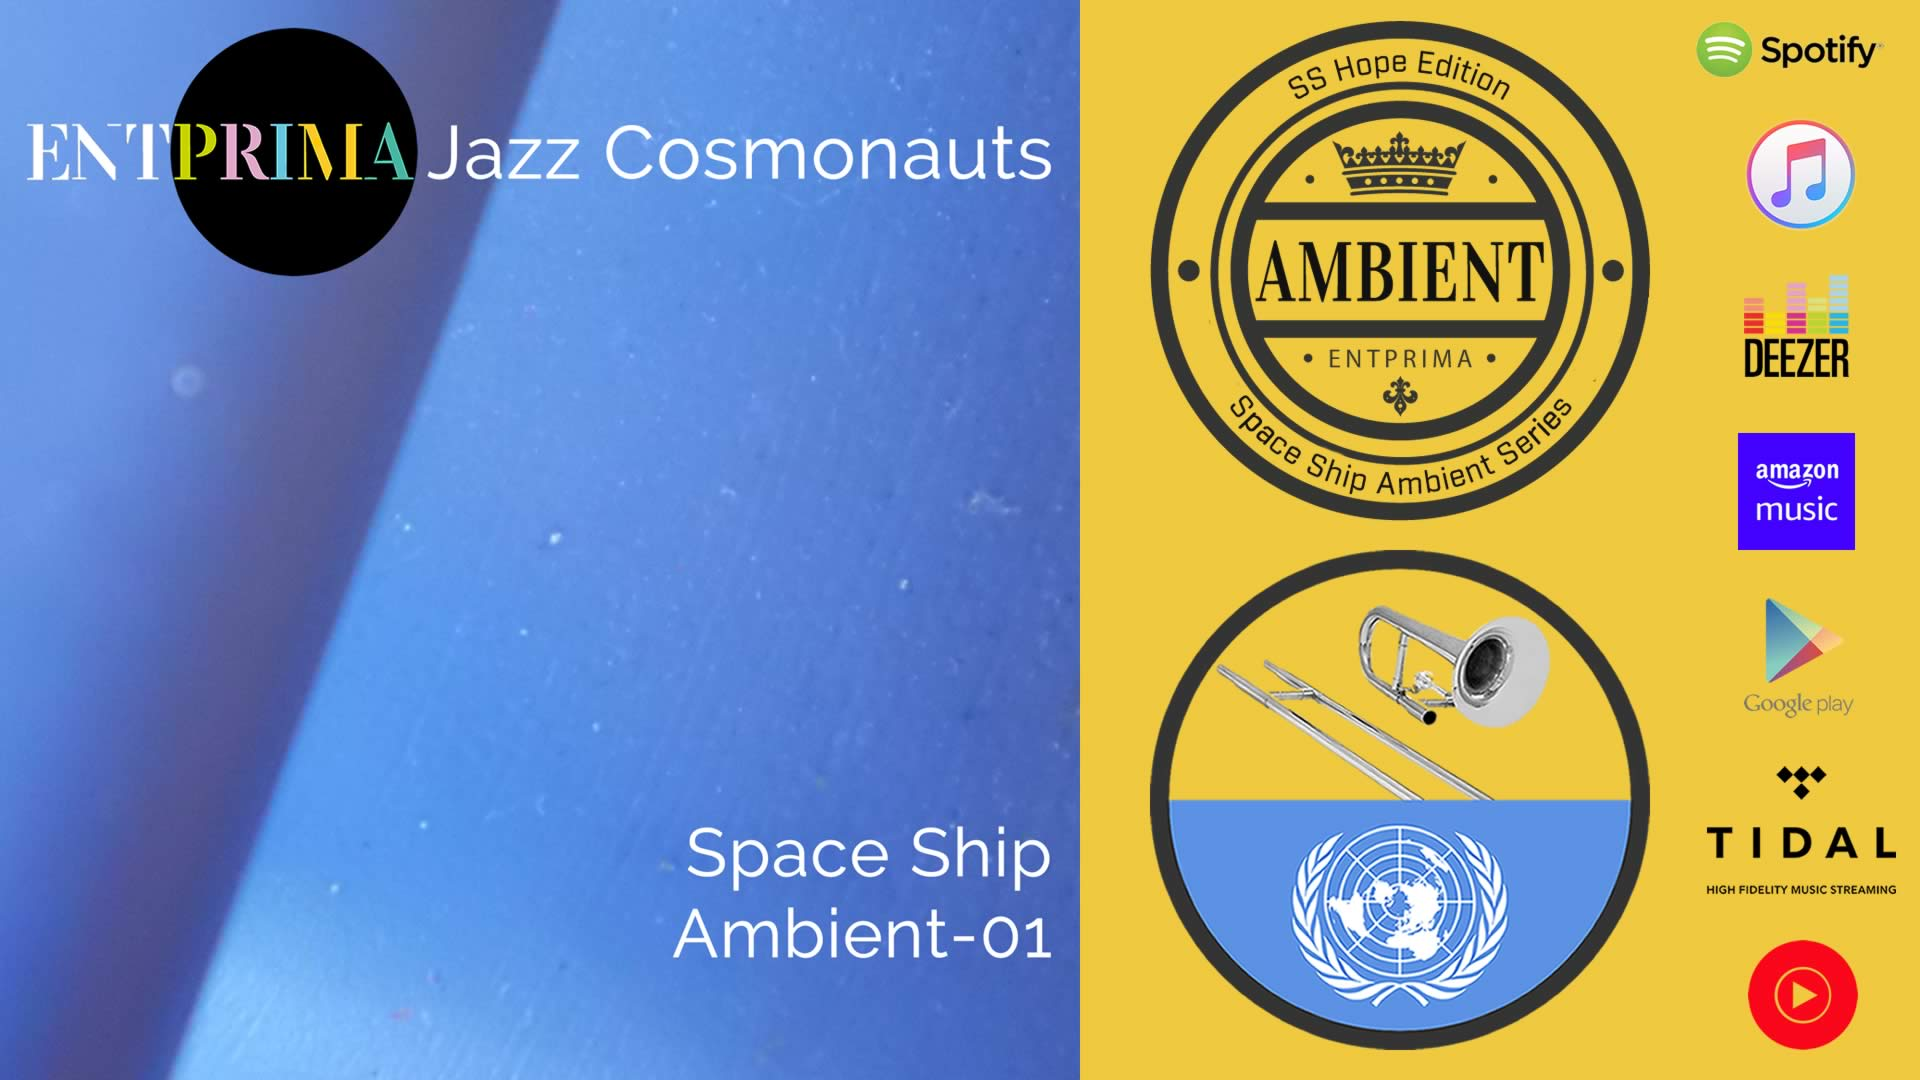 Space Ship Ambient-01 - Entprima Jazz Cosmonauts